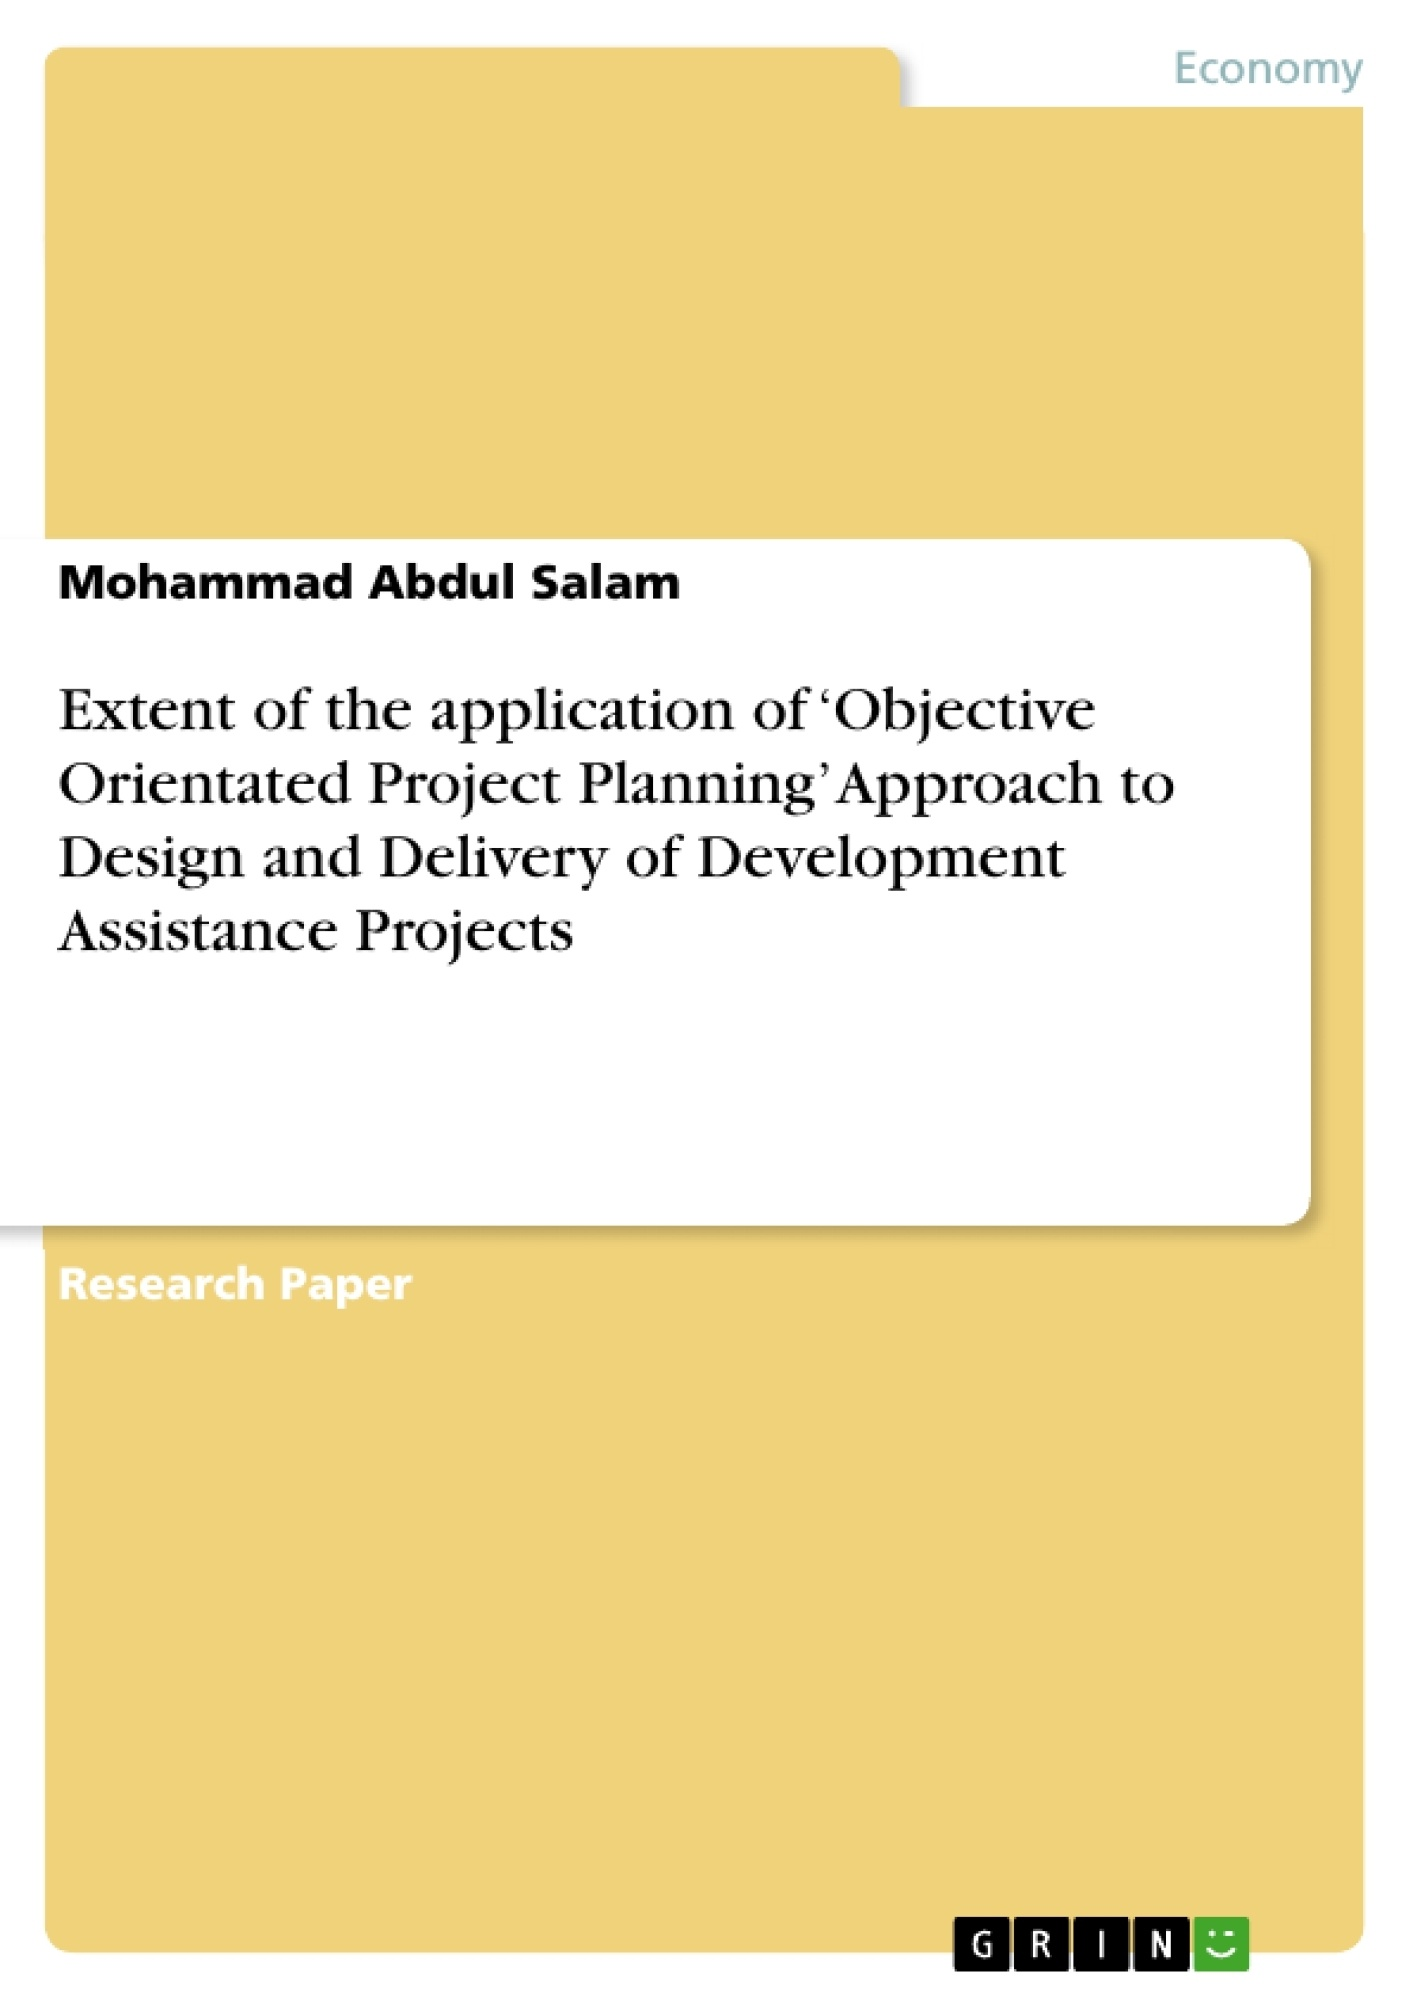 Title: Extent of the application of 'Objective Orientated Project Planning' Approach to Design and Delivery of Development Assistance Projects